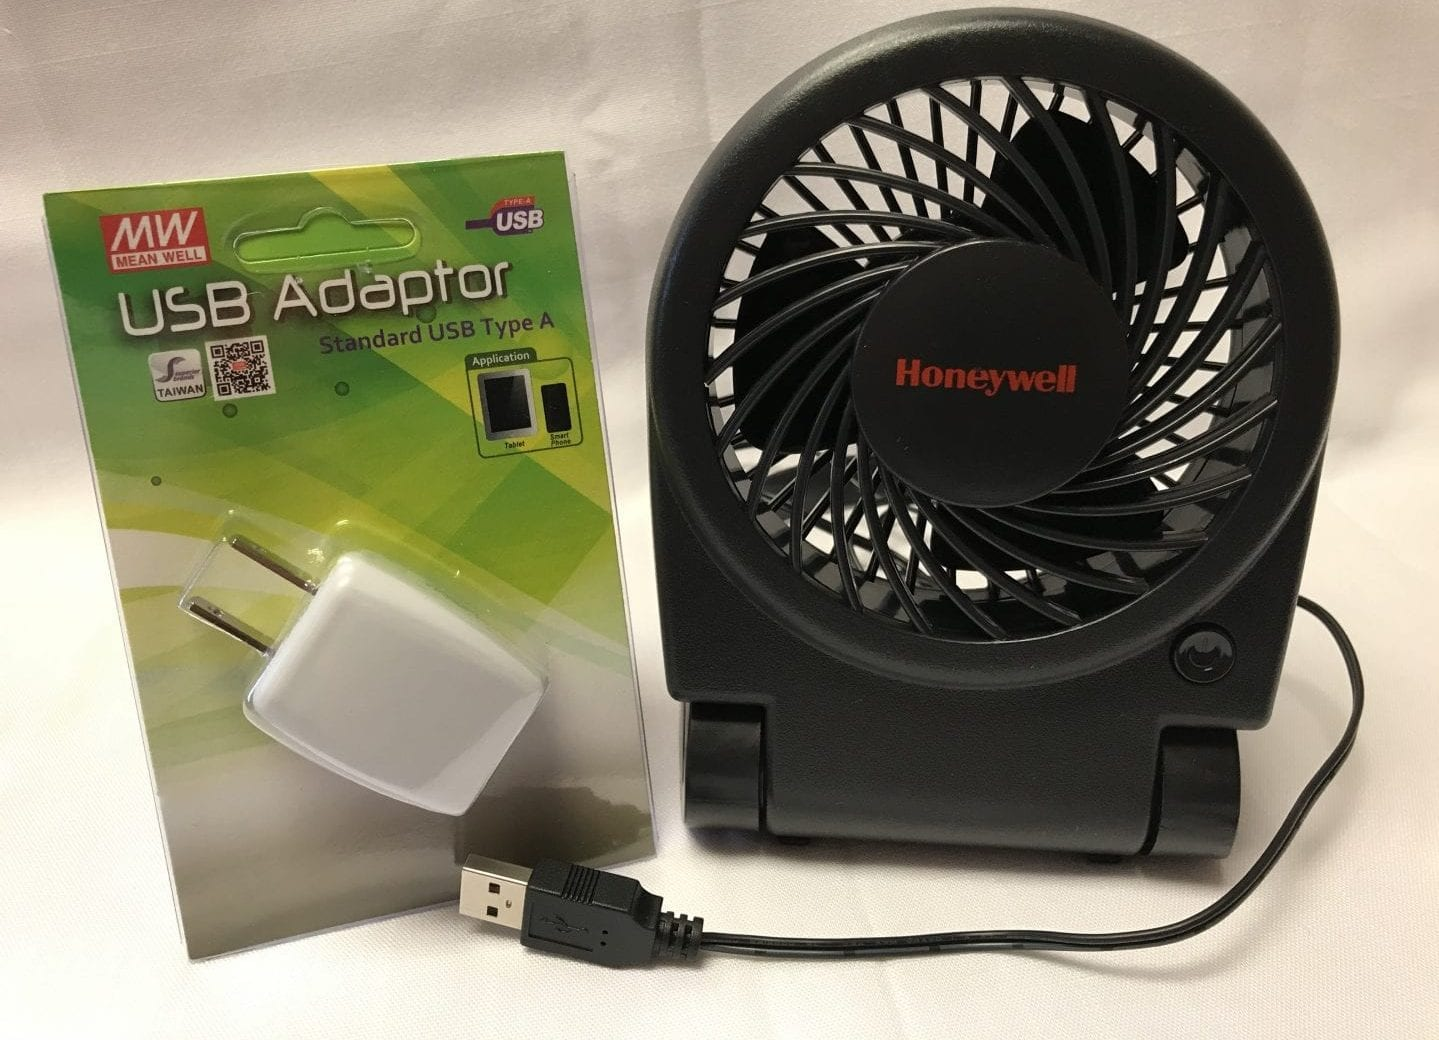 turbo fan, usb cable, and plug adapter